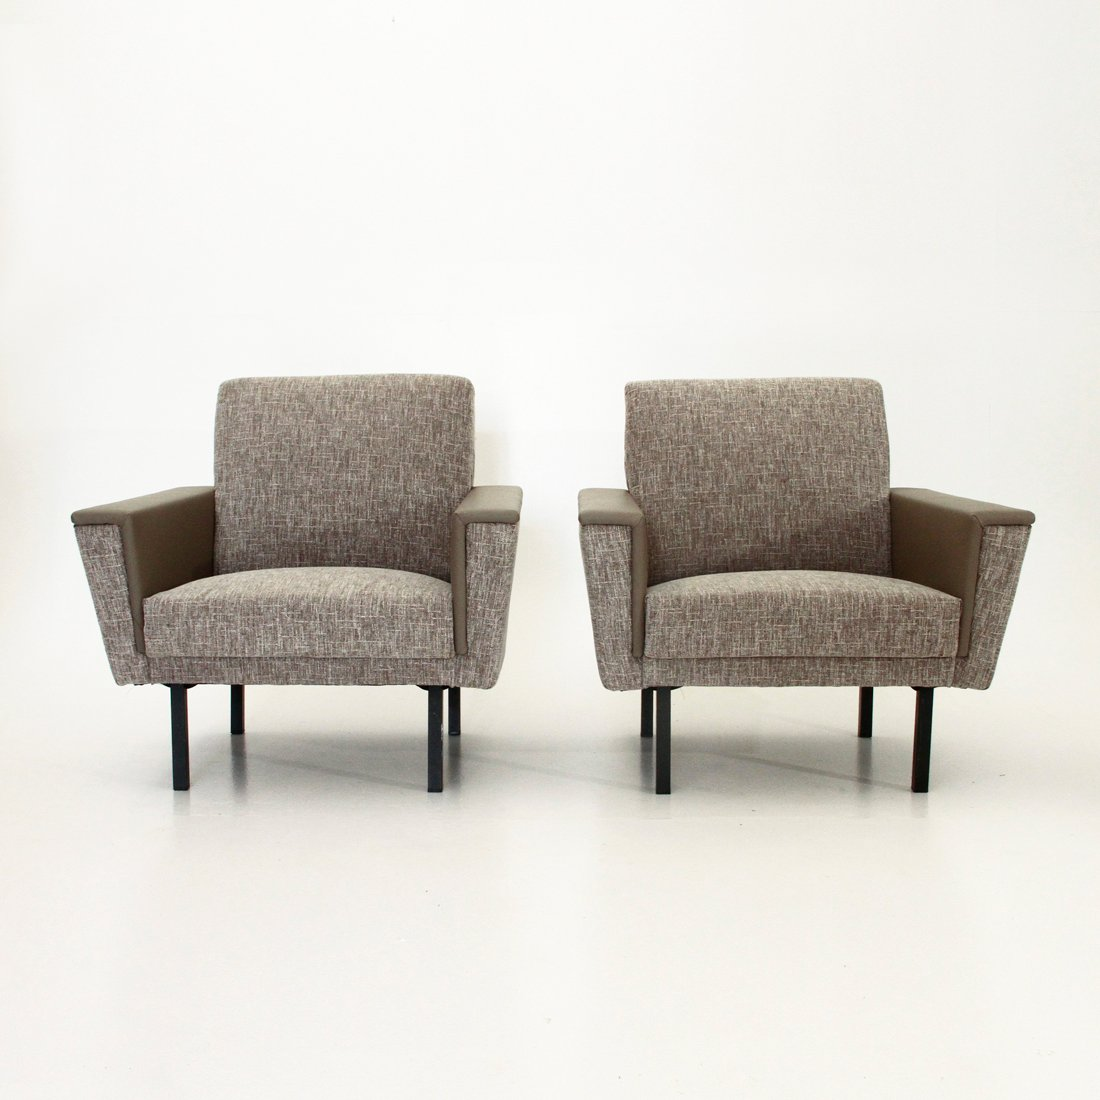 Grey mid century armchairs 1950s set of 2 for sale at pamono for 2 armchairs for sale